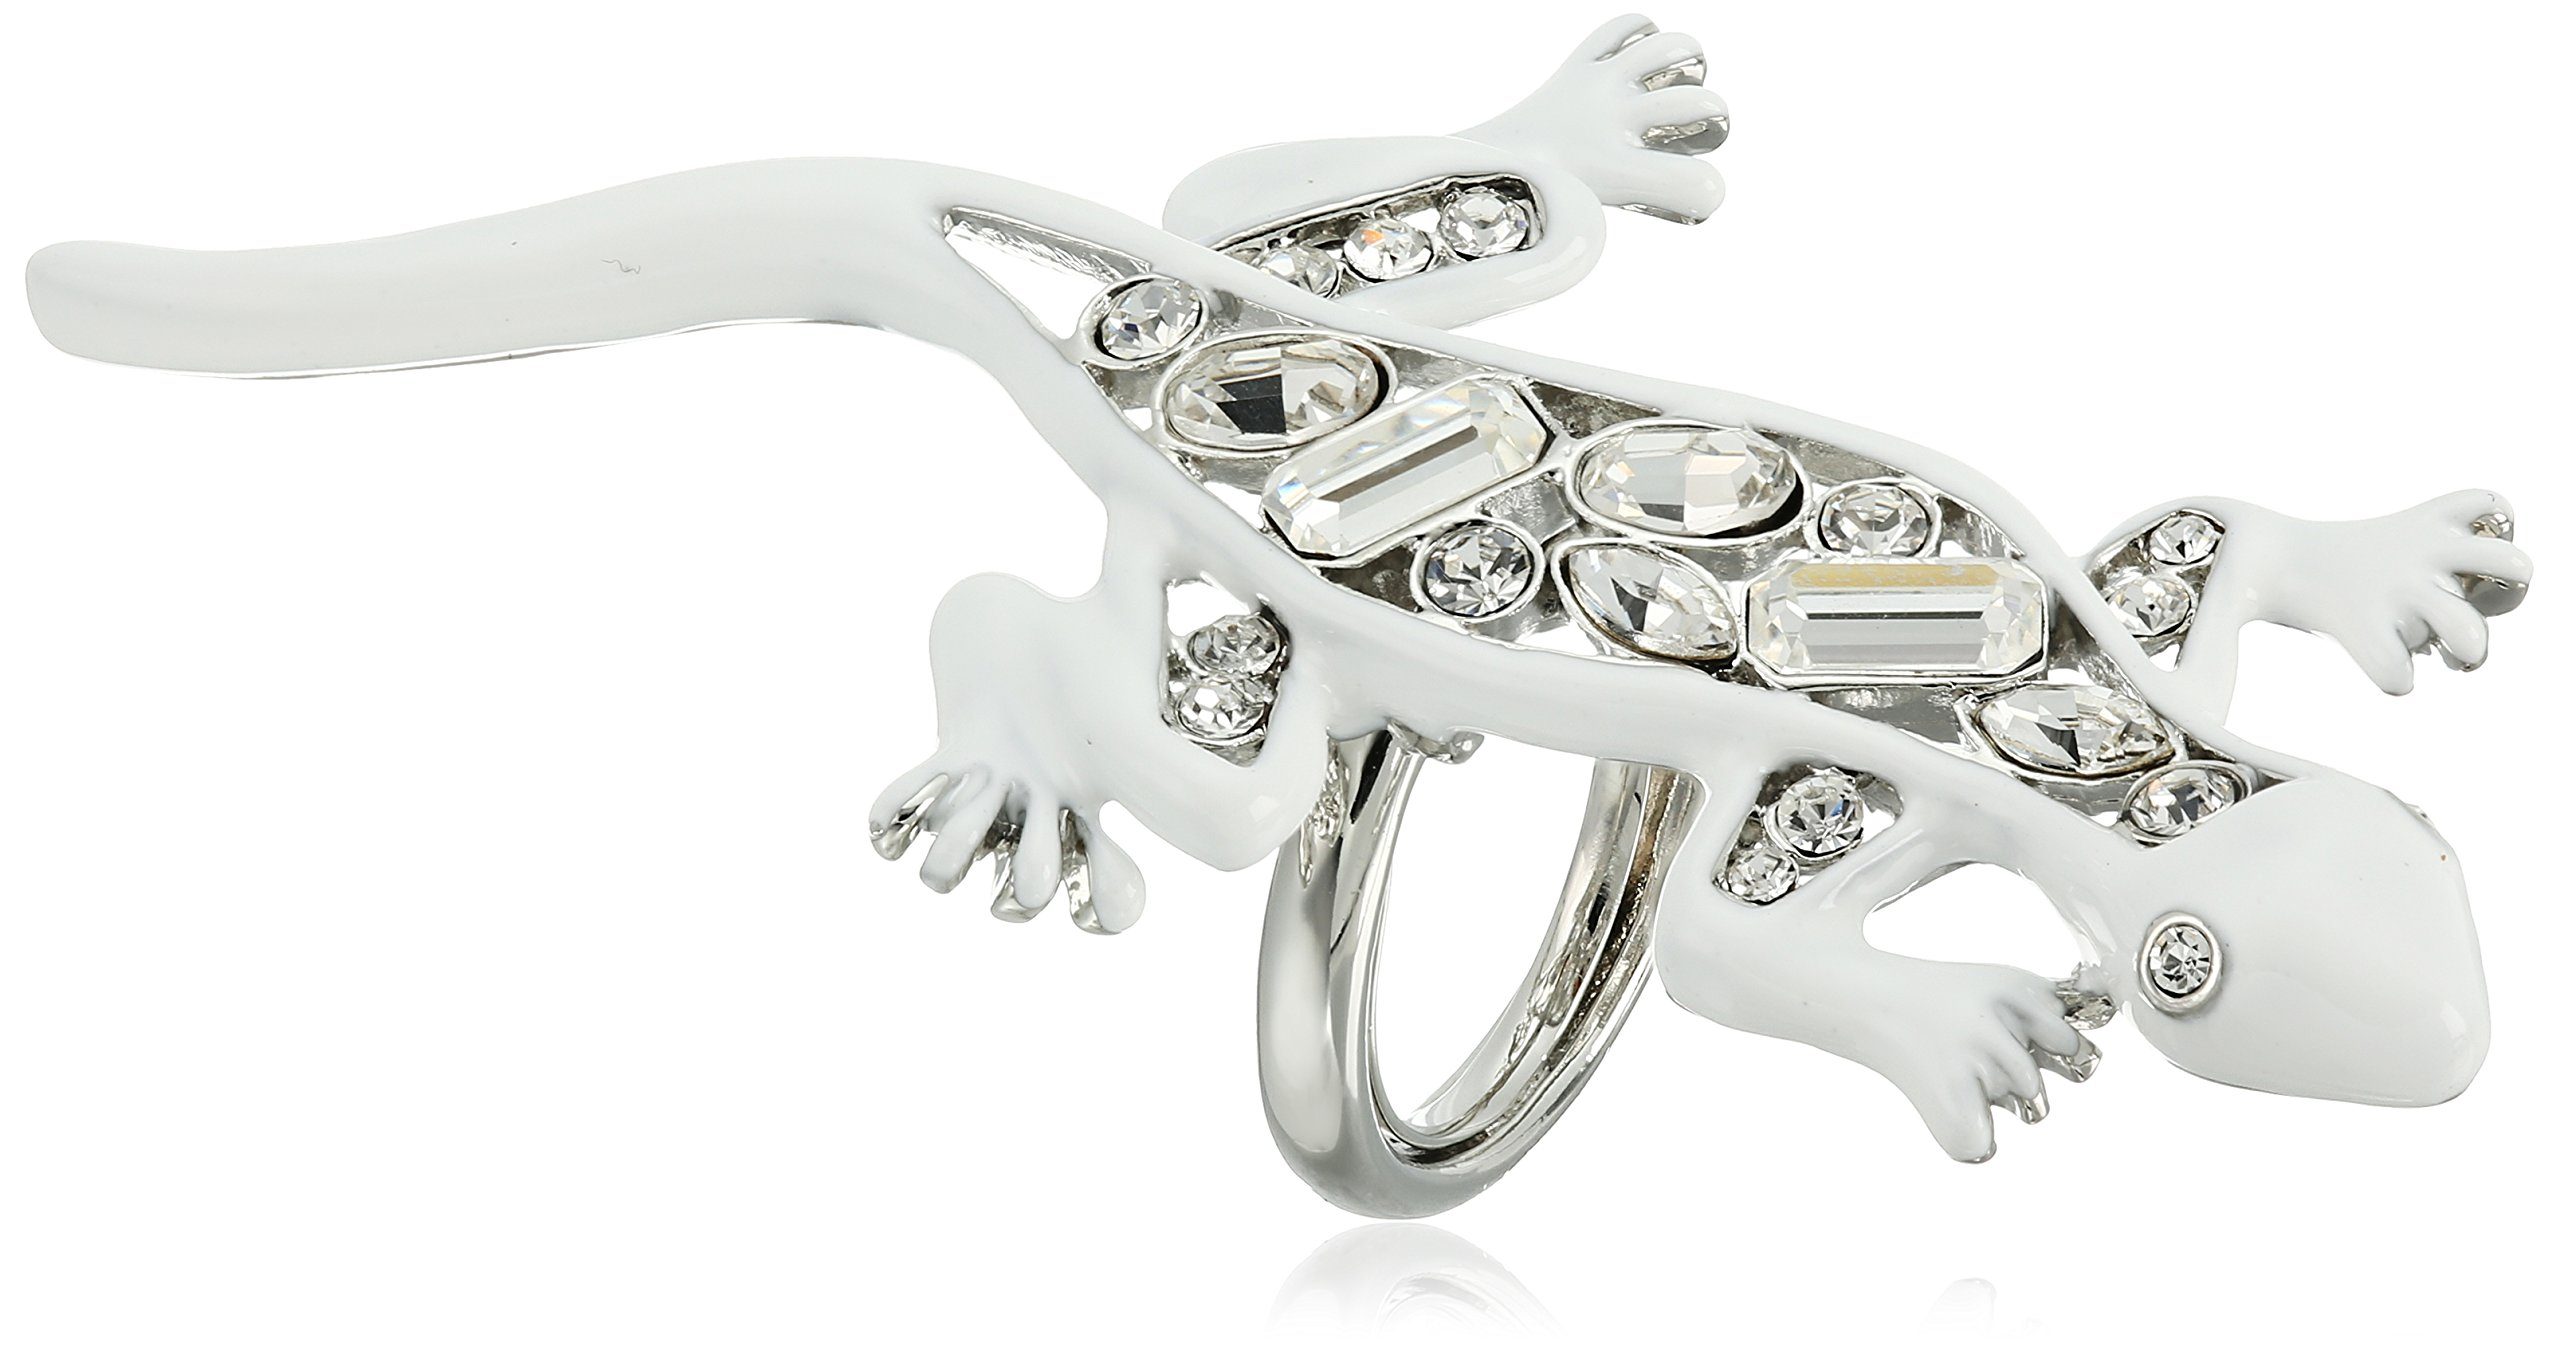 Kenneth Jay Lane White Enamel and Crystal Lizzard Ring, Size 5-7 by Kenneth Jay Lane (Image #1)